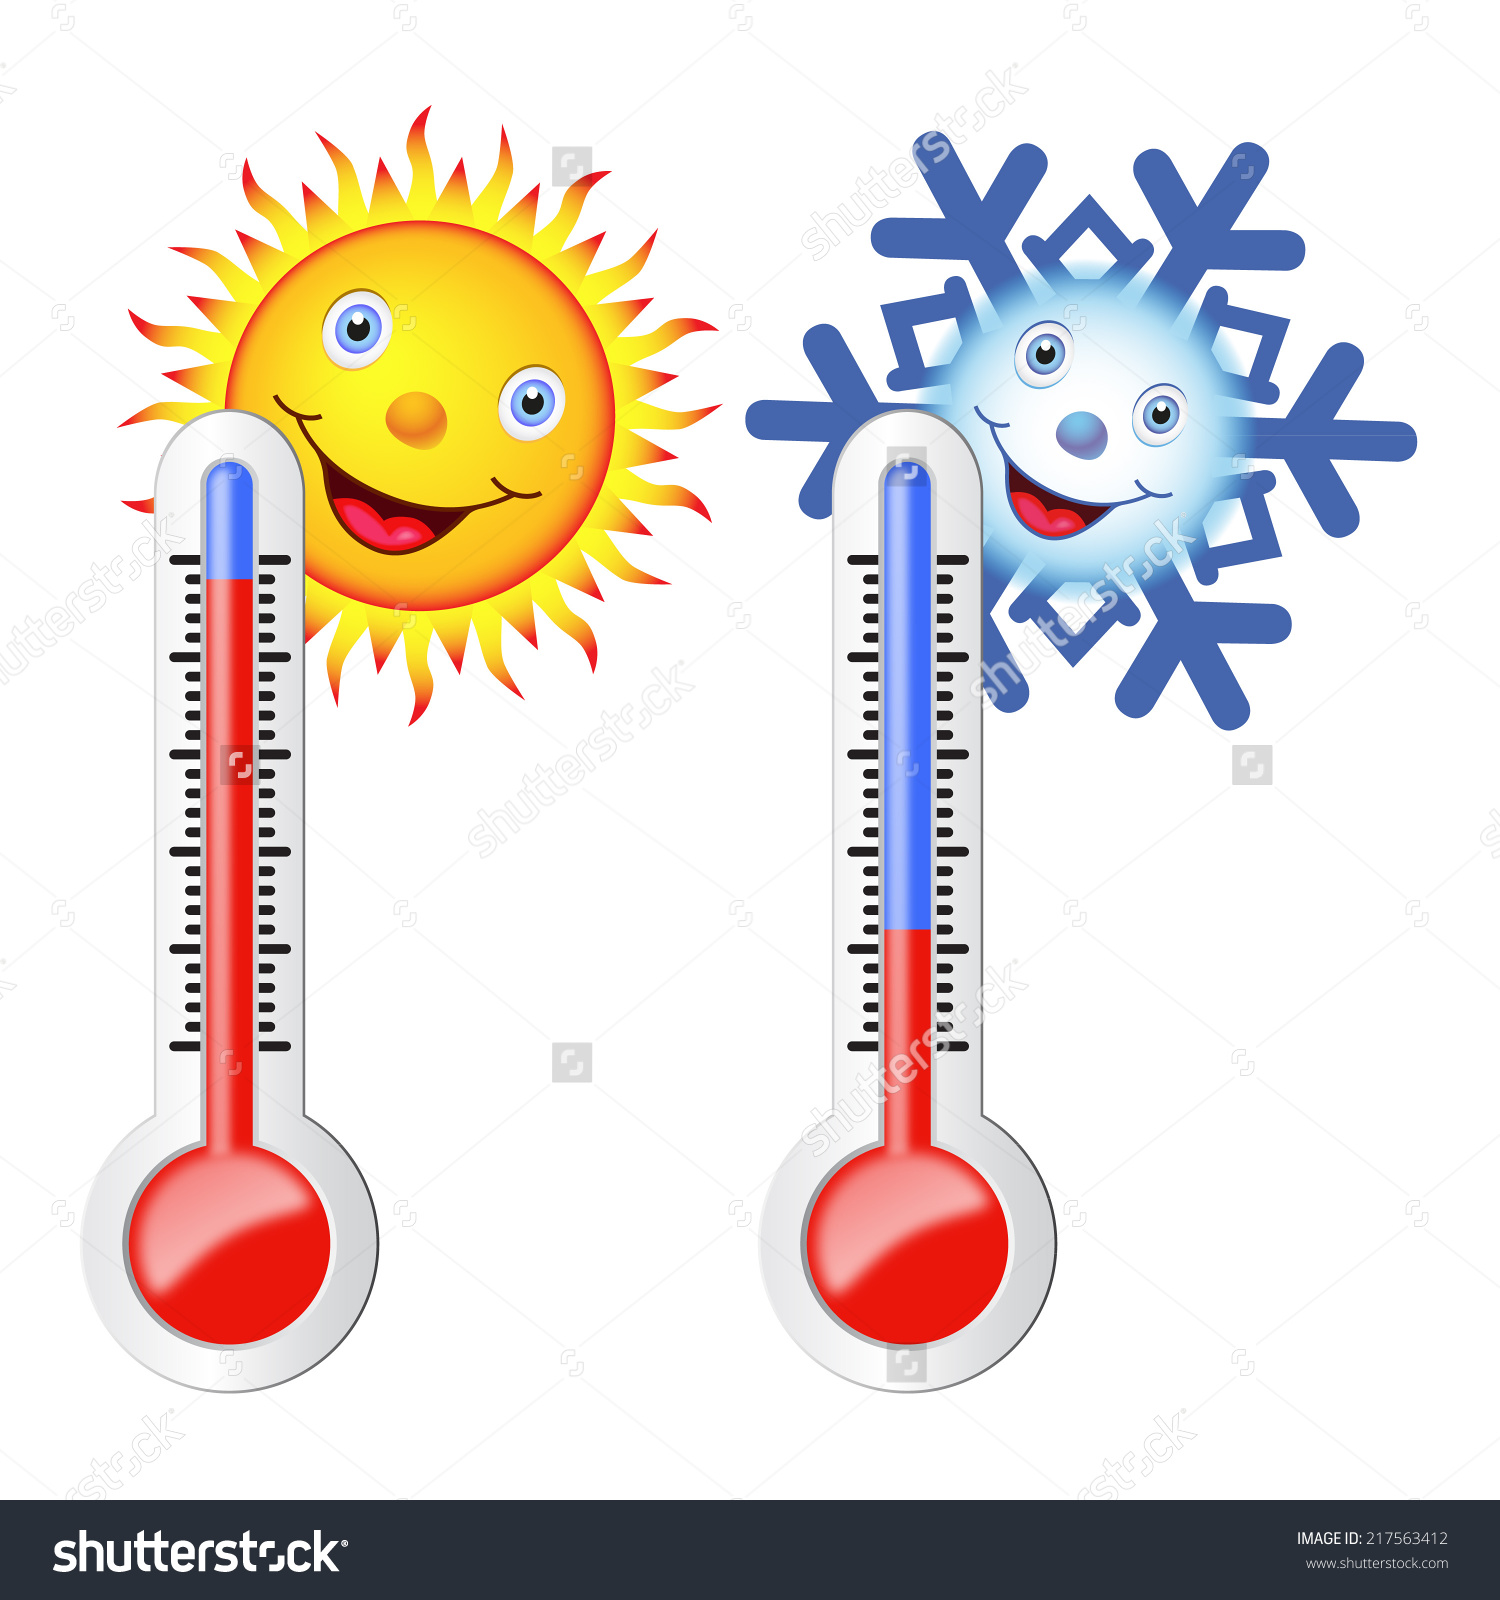 cute clipart of hot temperatures - Clipground